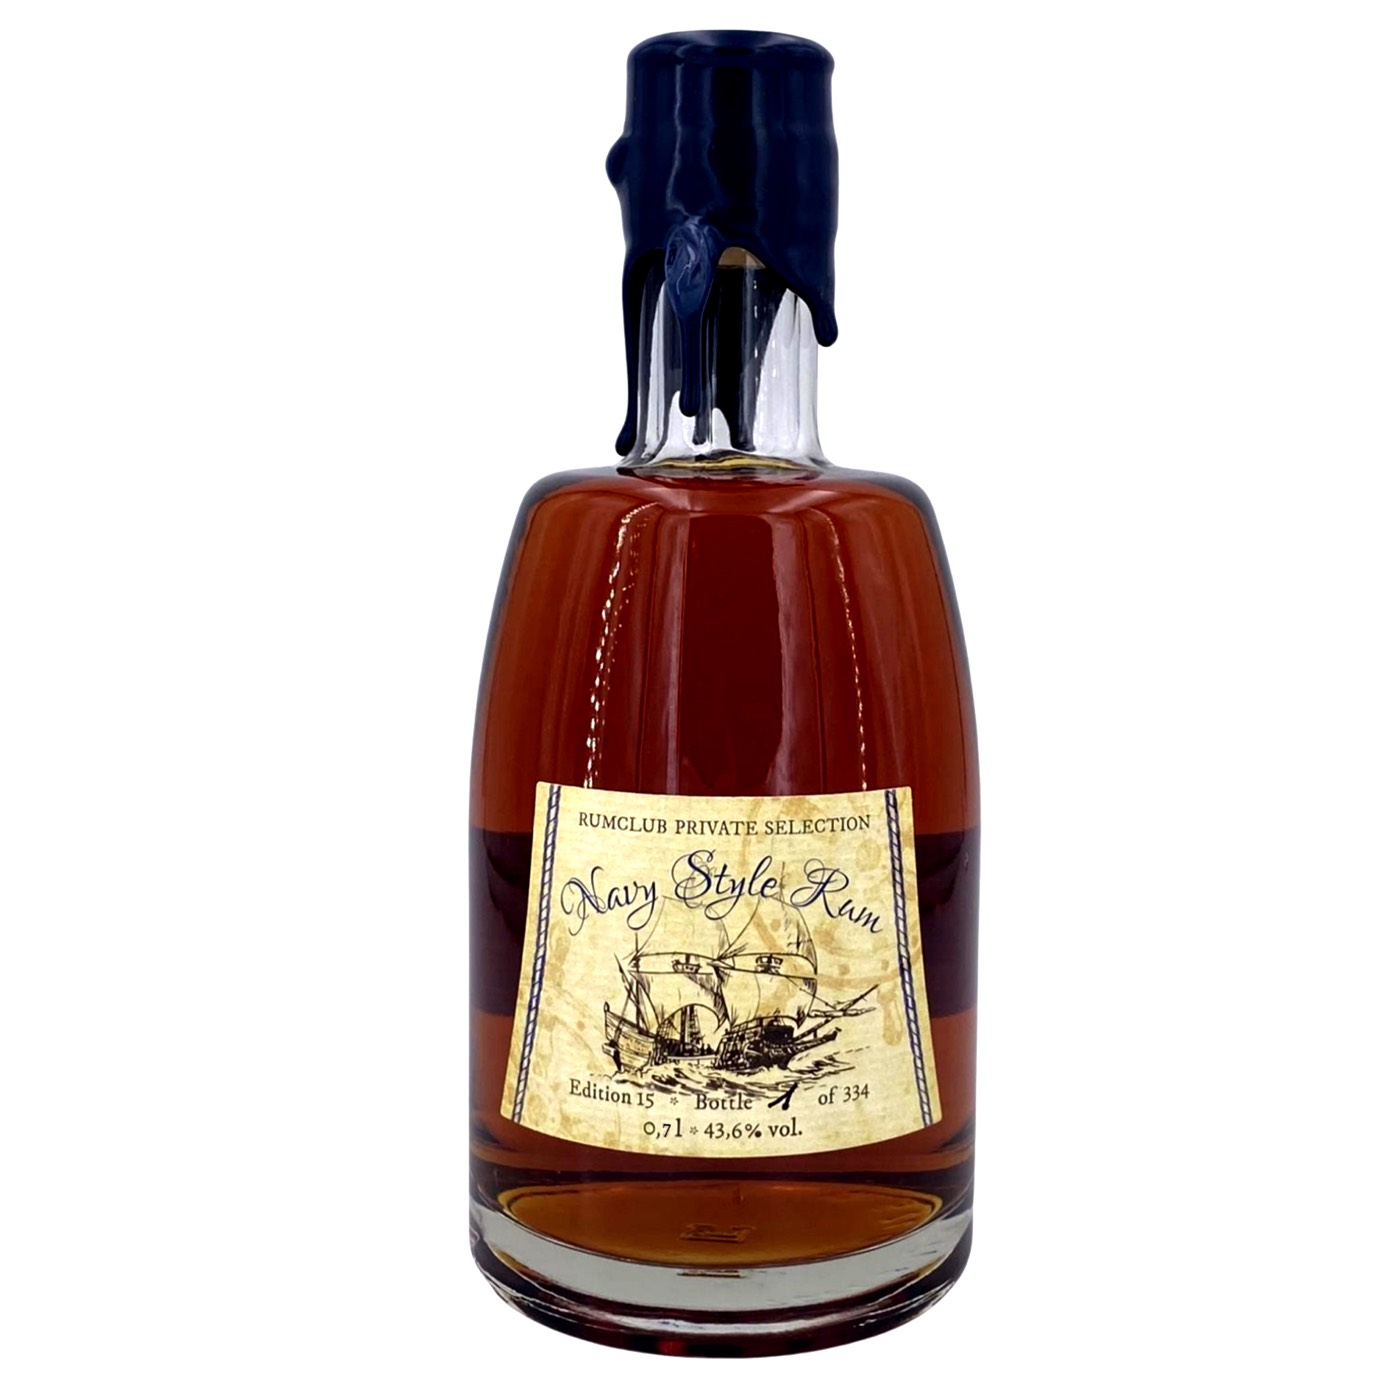 Bottle image of Rumclub Private Selection Ed. 15 Navy Style Rum